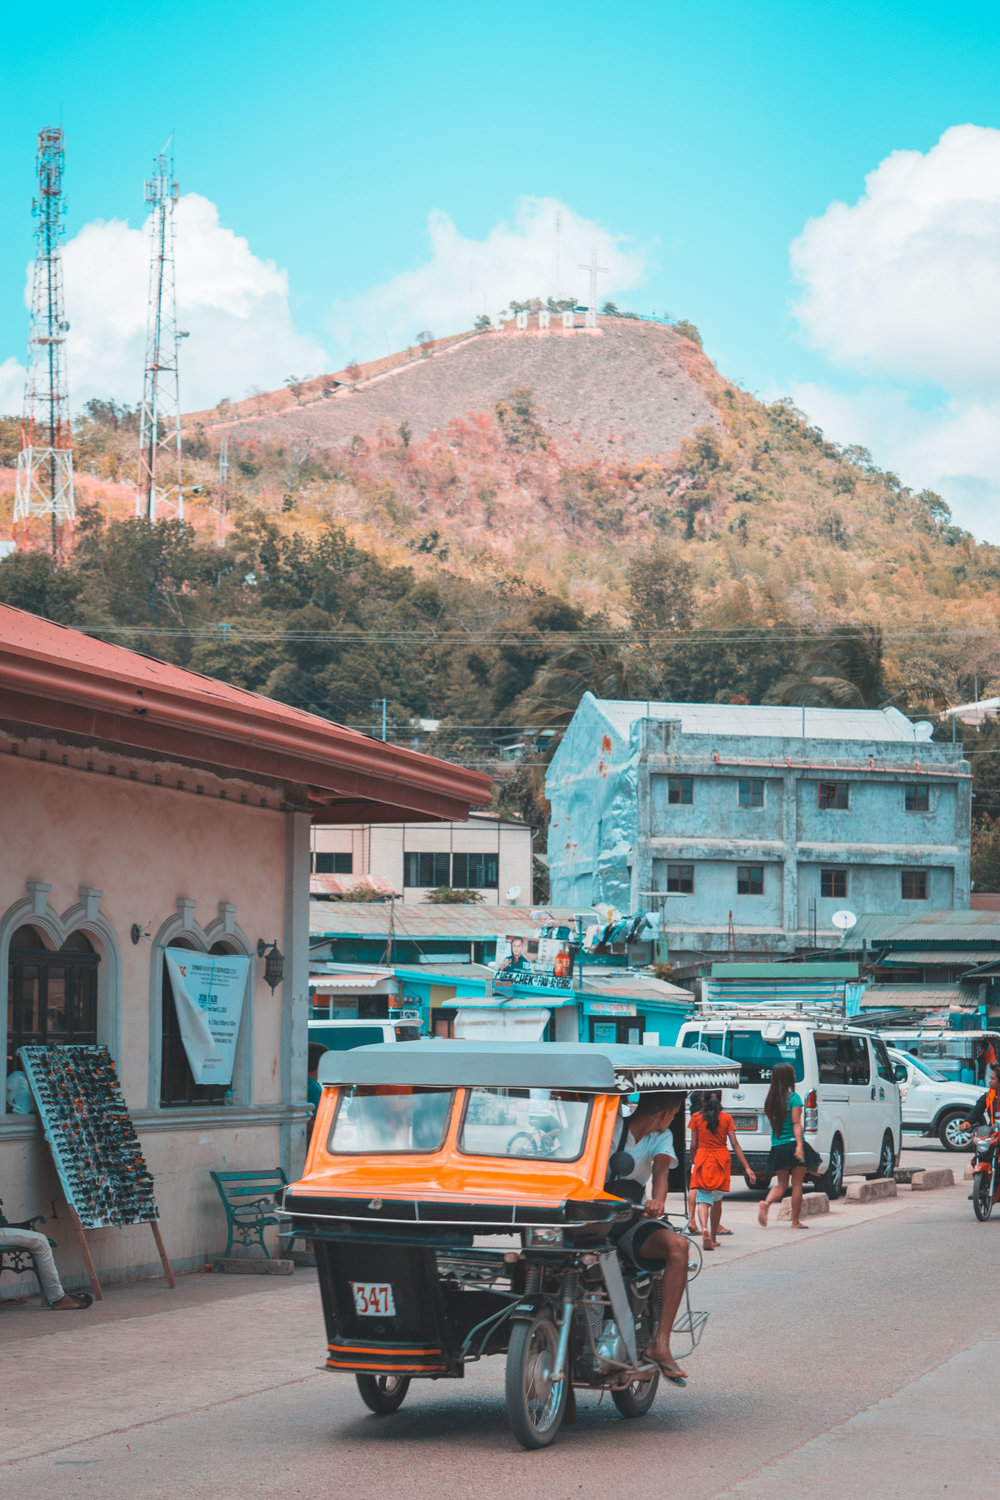 A distracted driver in Coron Town with Mt Tapyas in the background